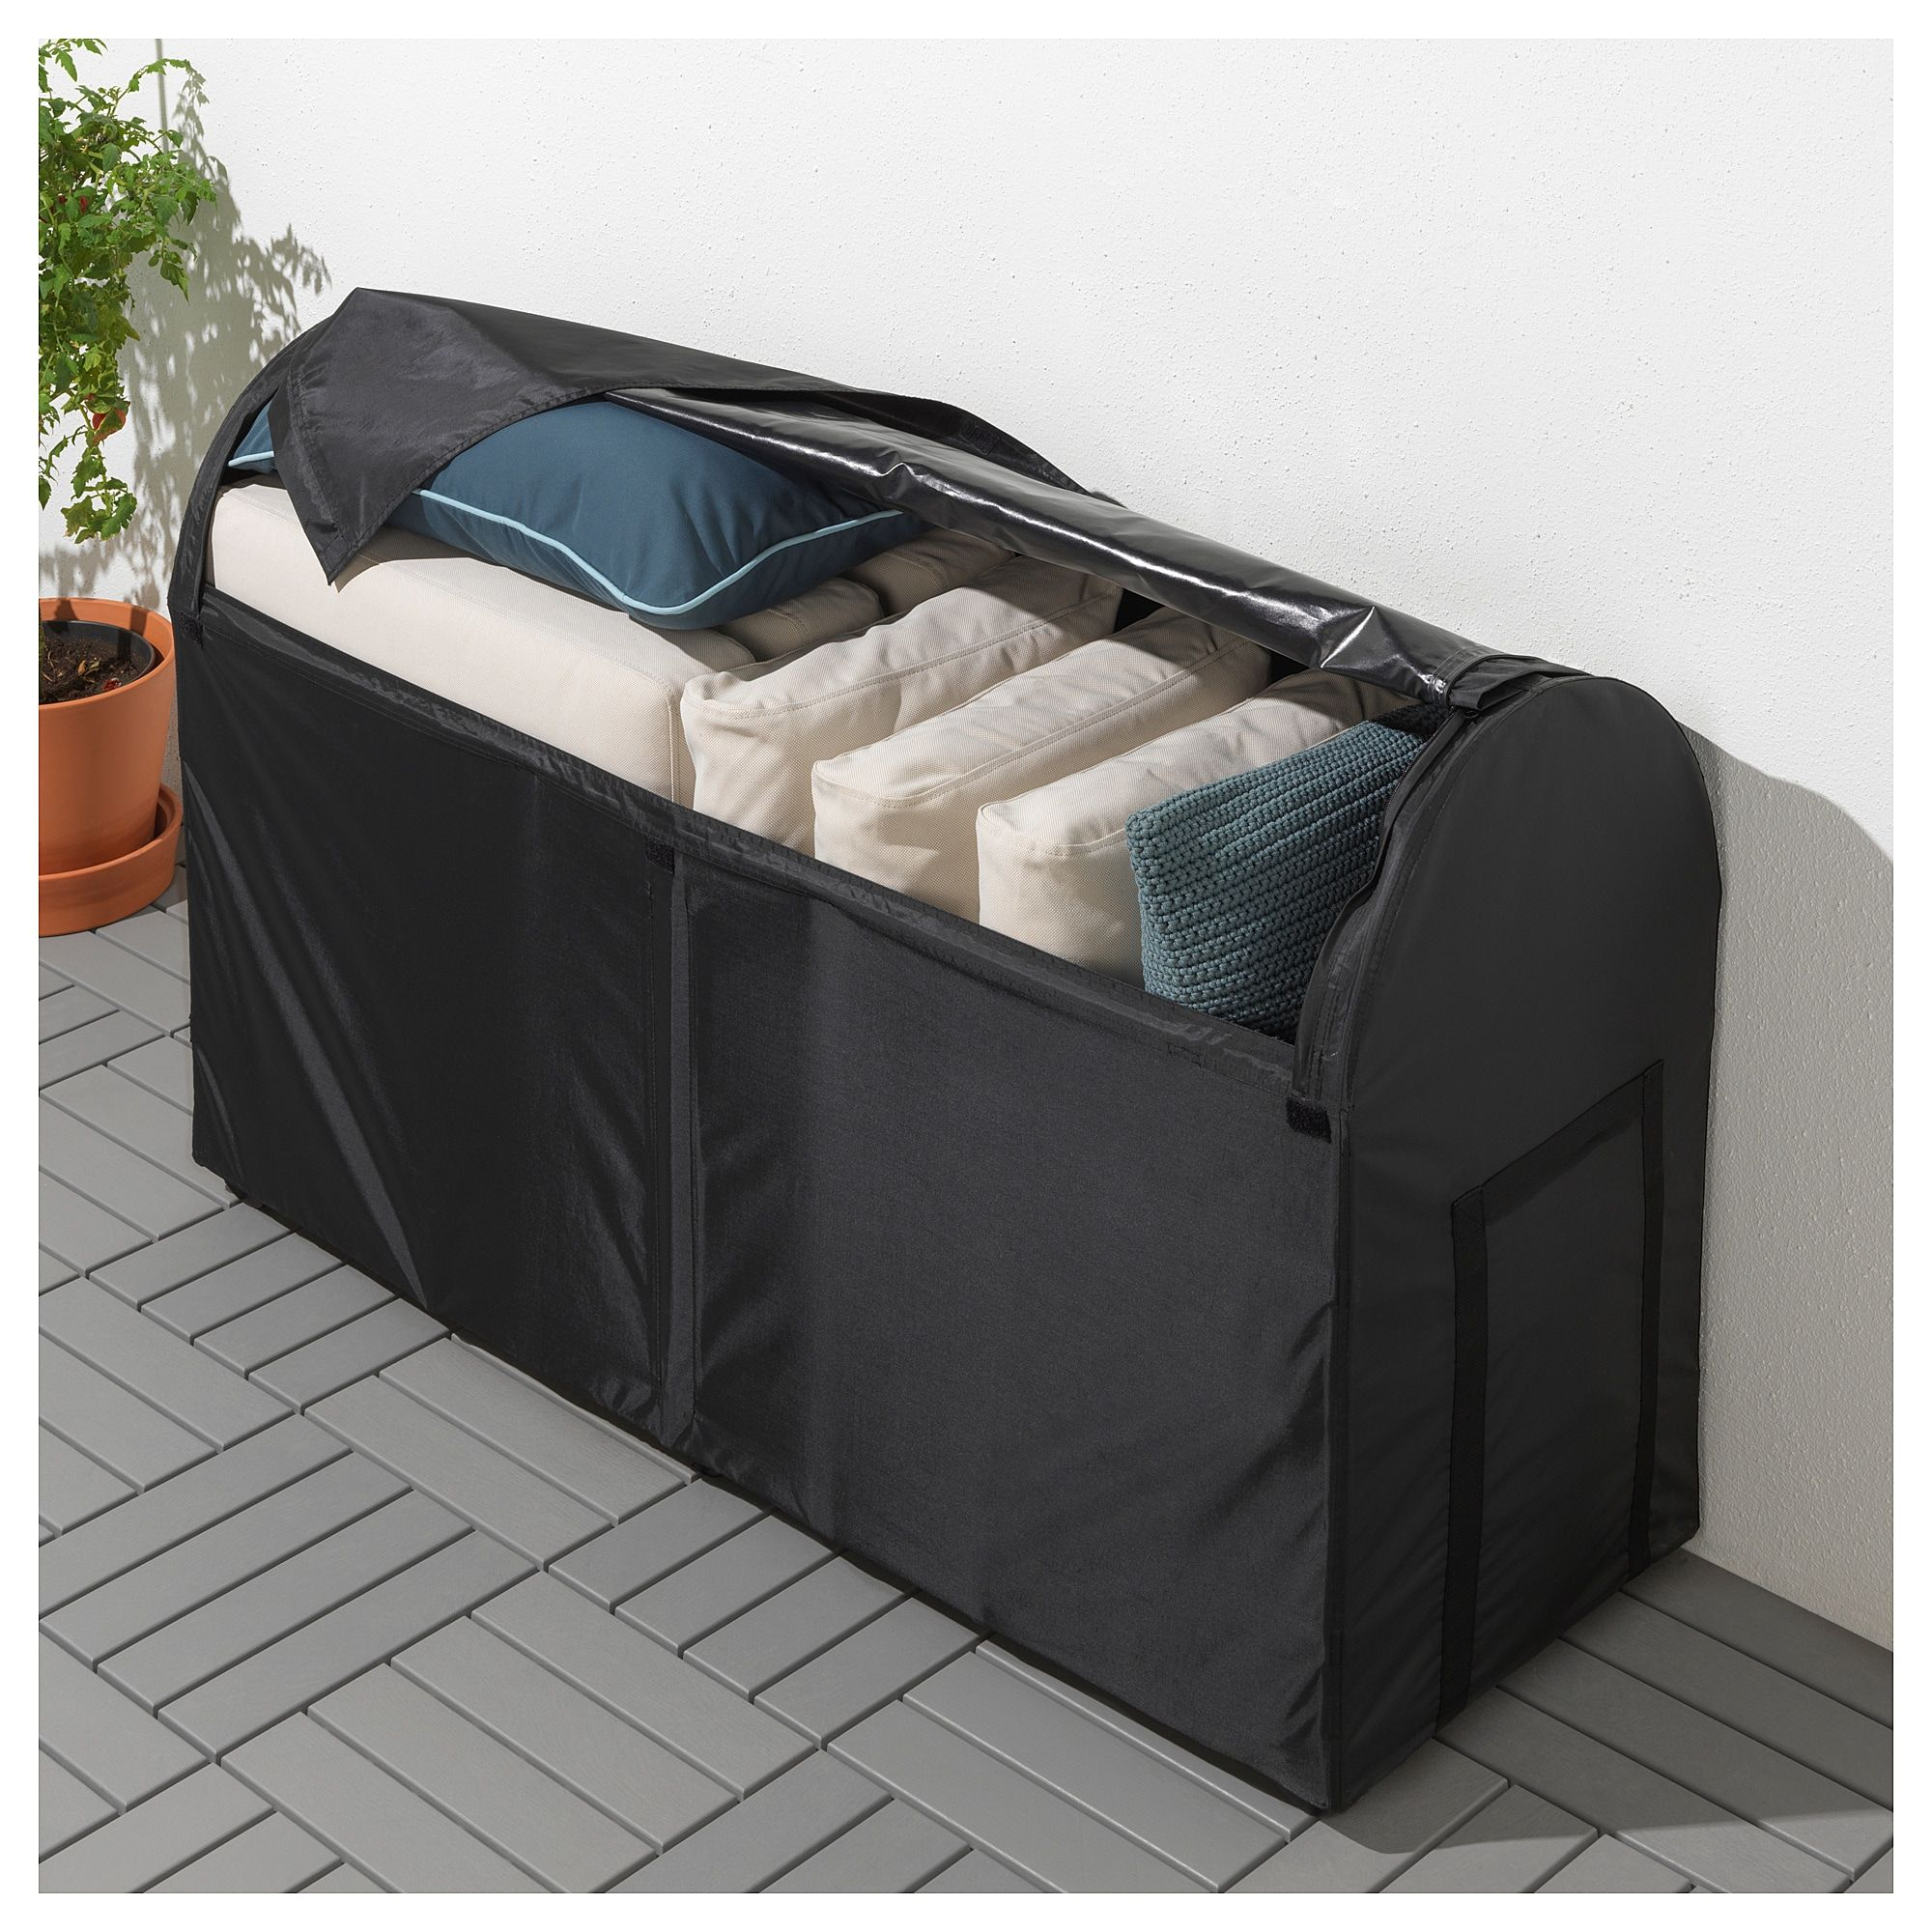 Auflagenbox Ikea Storage Box Outdoor TosterÖ Black In 2019 Products Outdoor